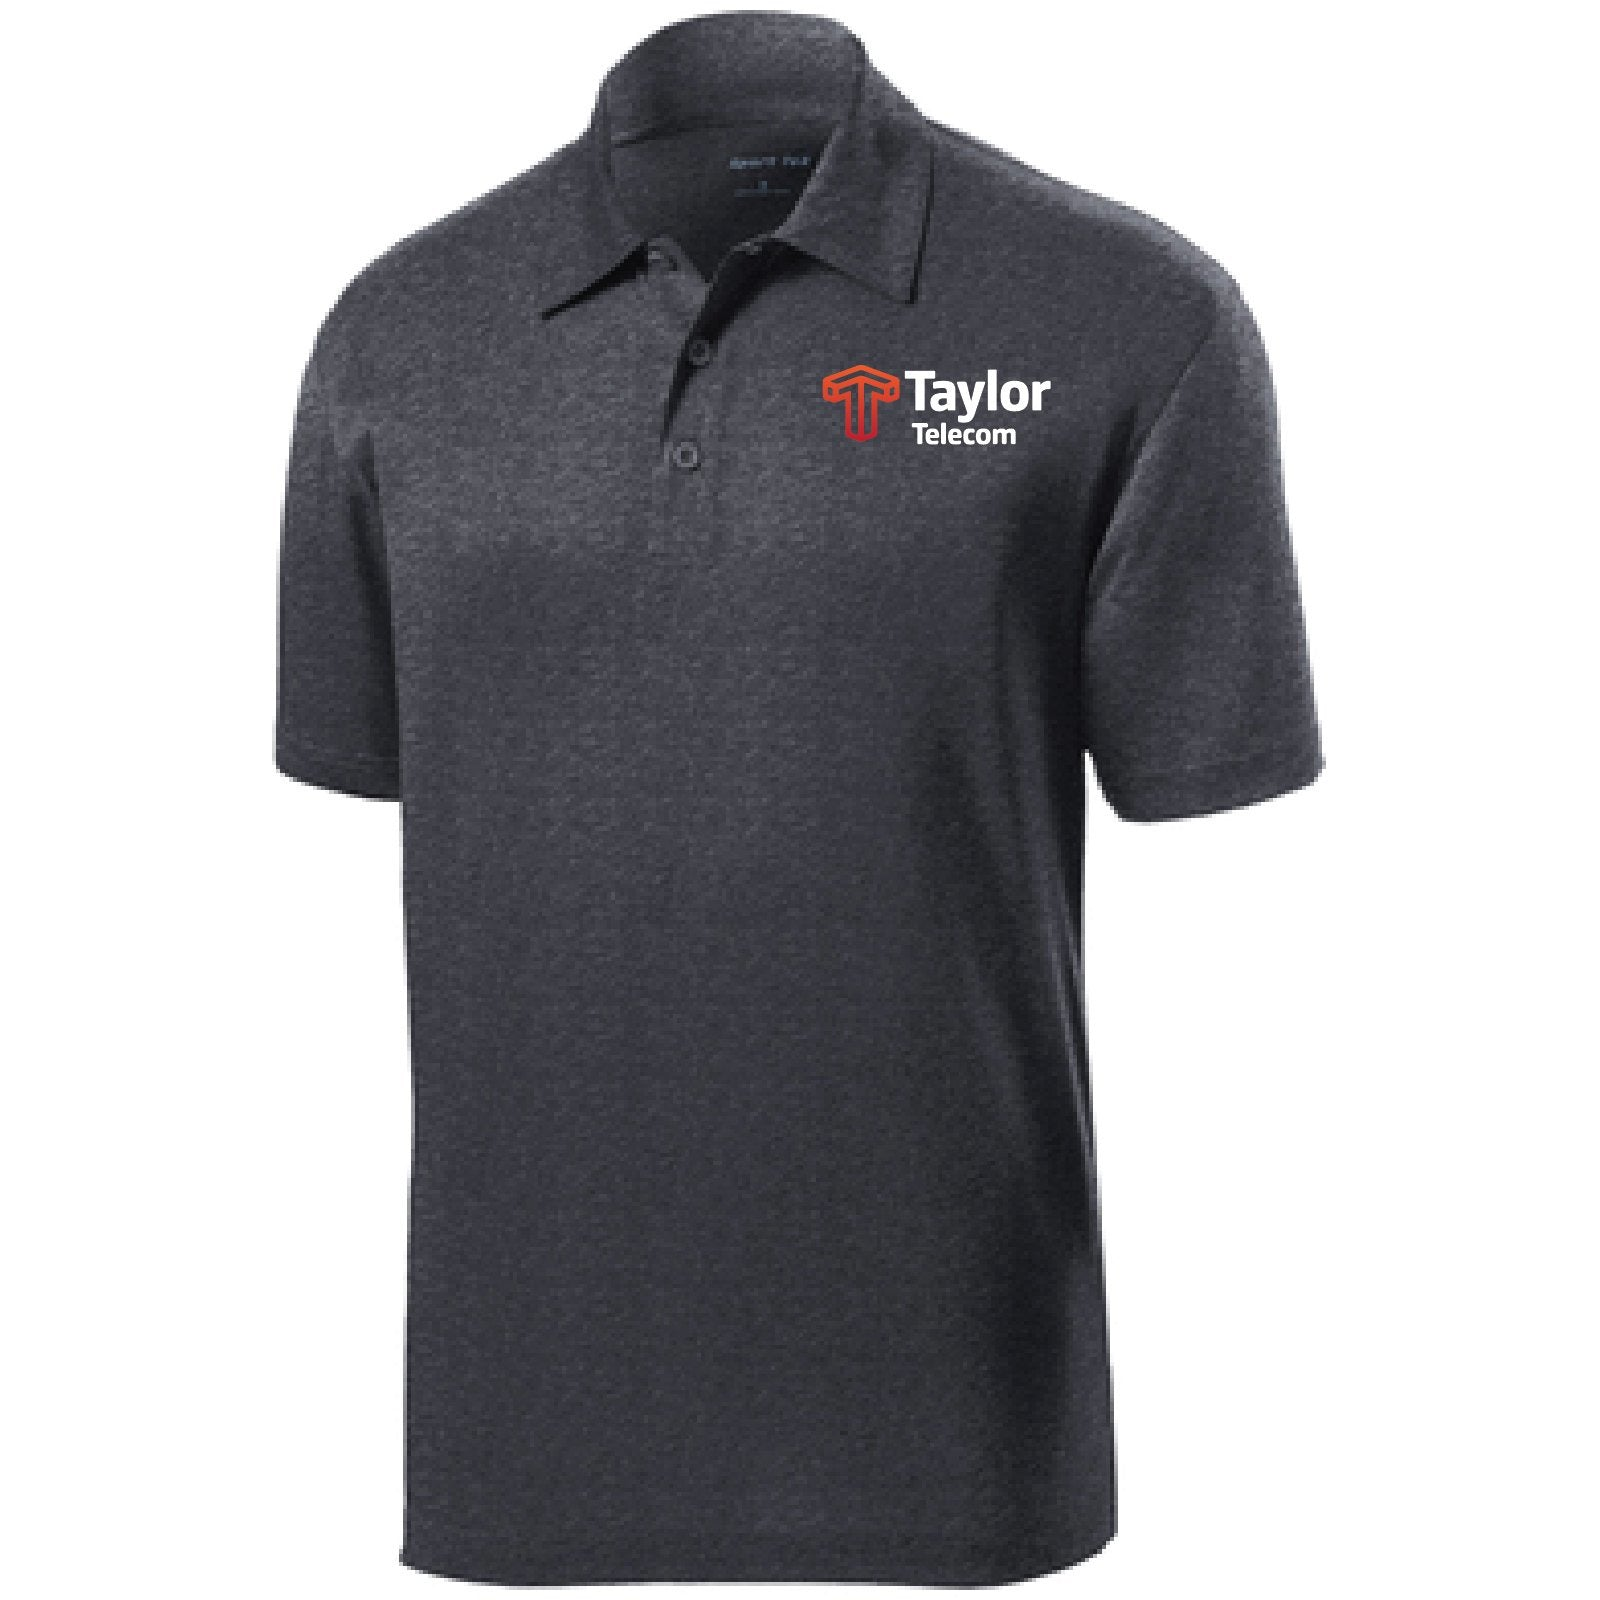 Taylor Telecom Short-Sleeve Heather Polo Shirt